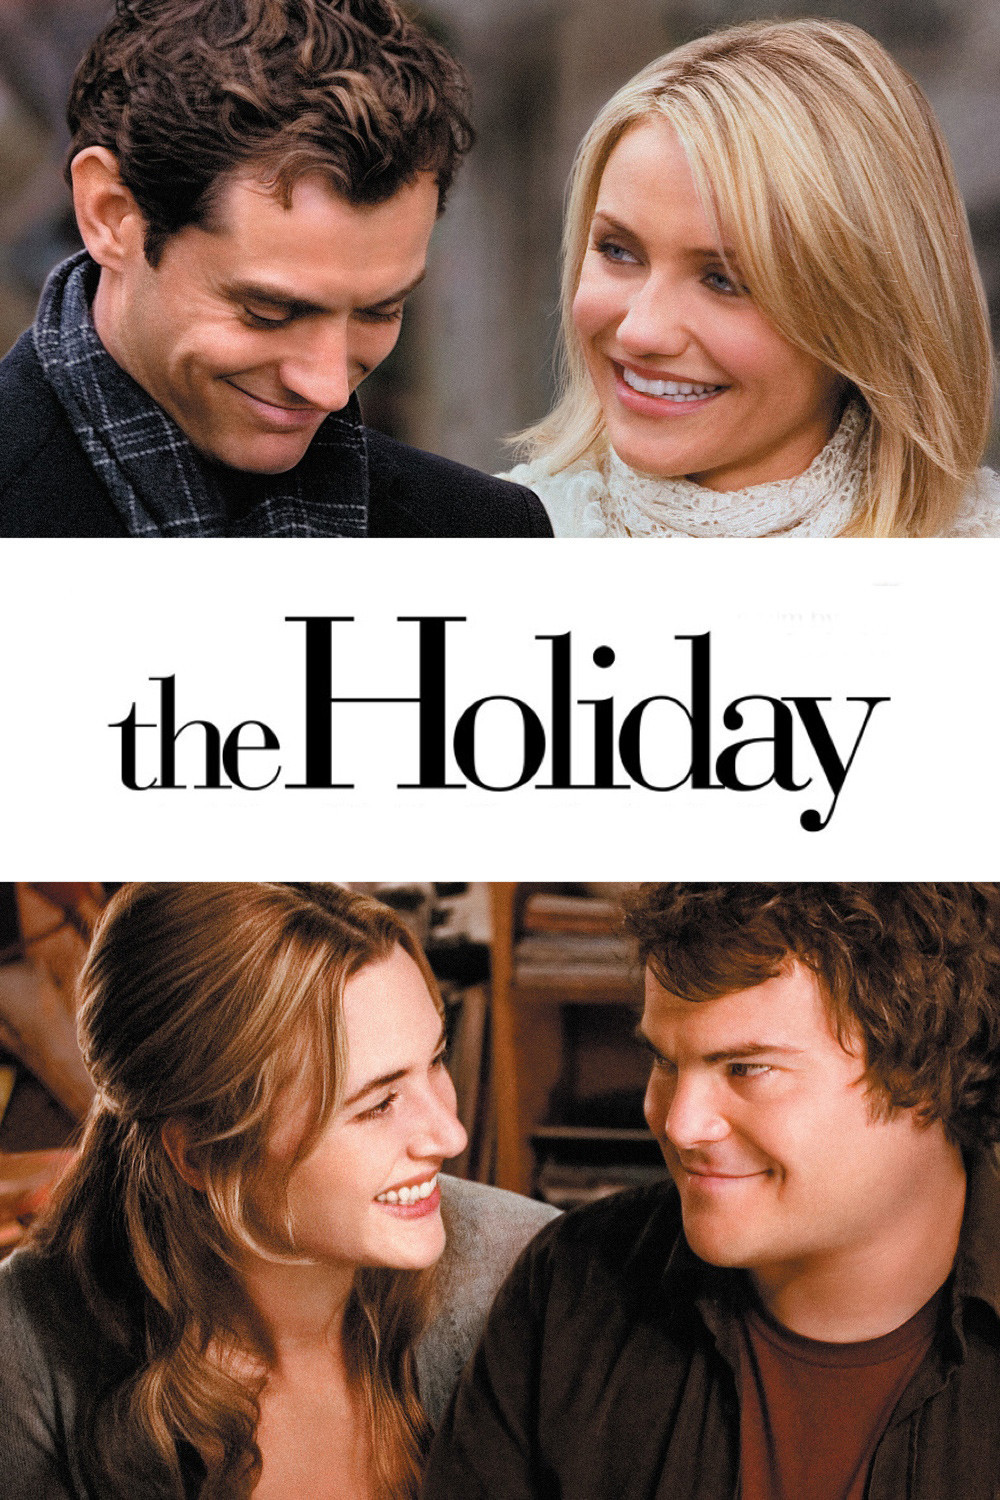 4. The Holiday